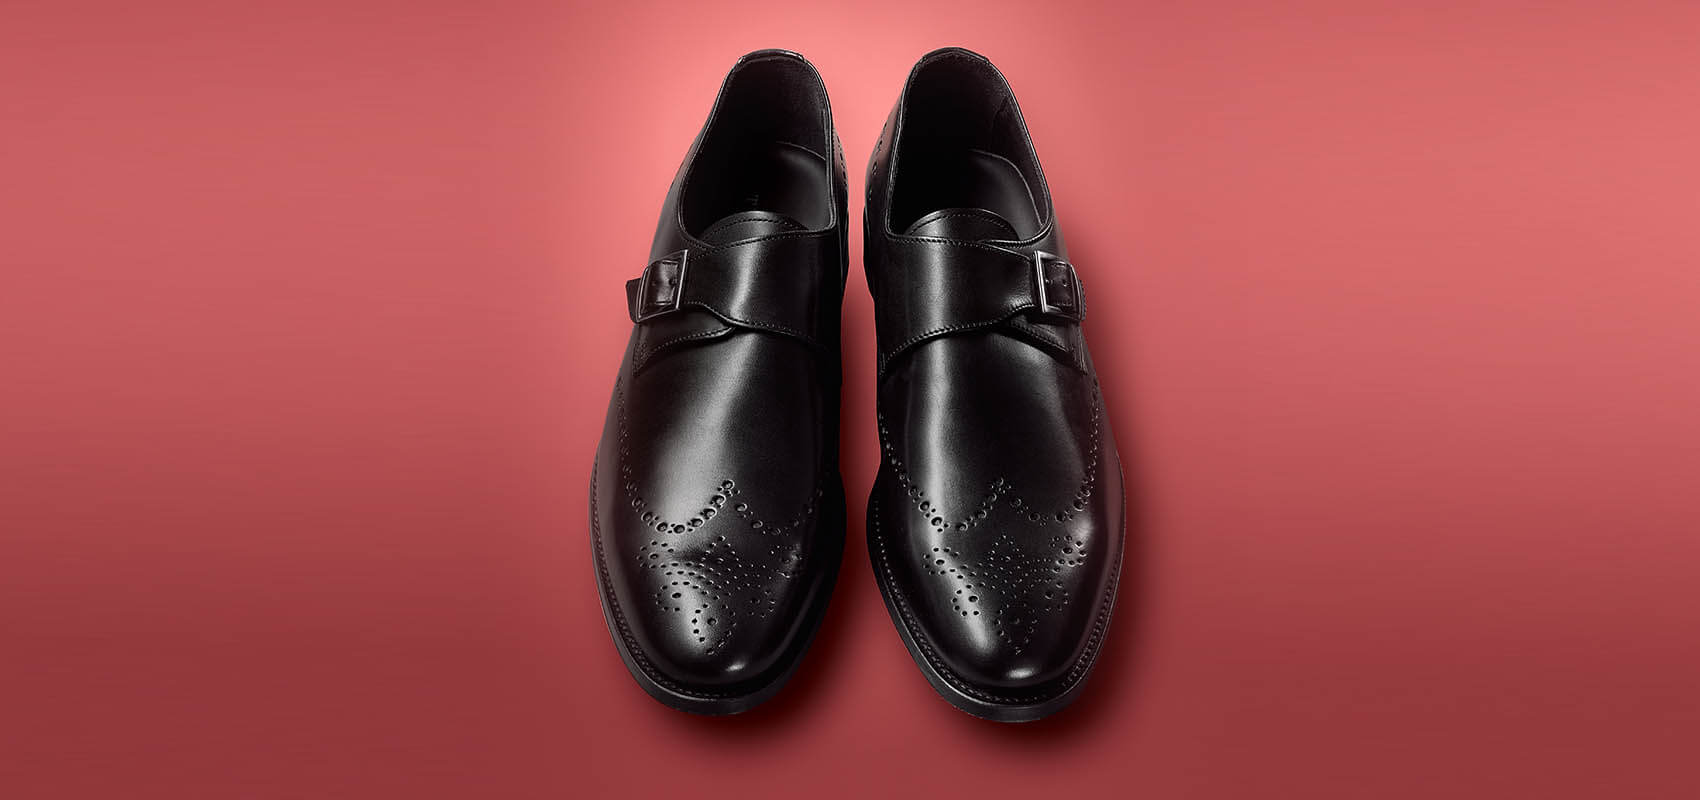 Charles Tyrwhitt Monk Shoes